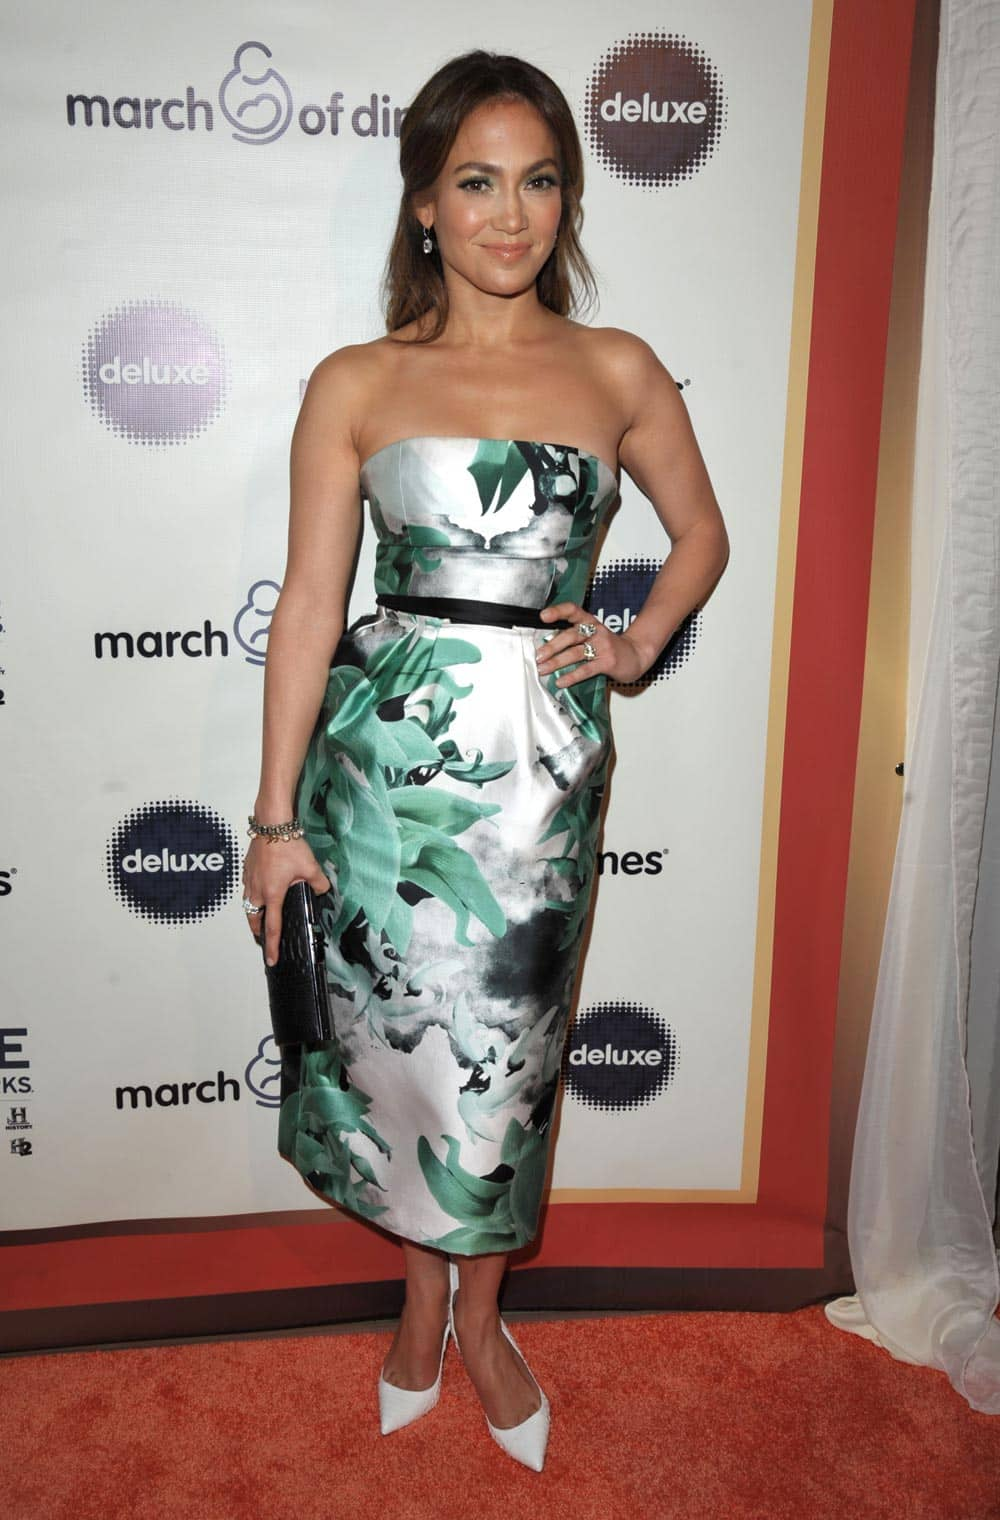 Jennifer Lopez attends the 2013 March of Dimes